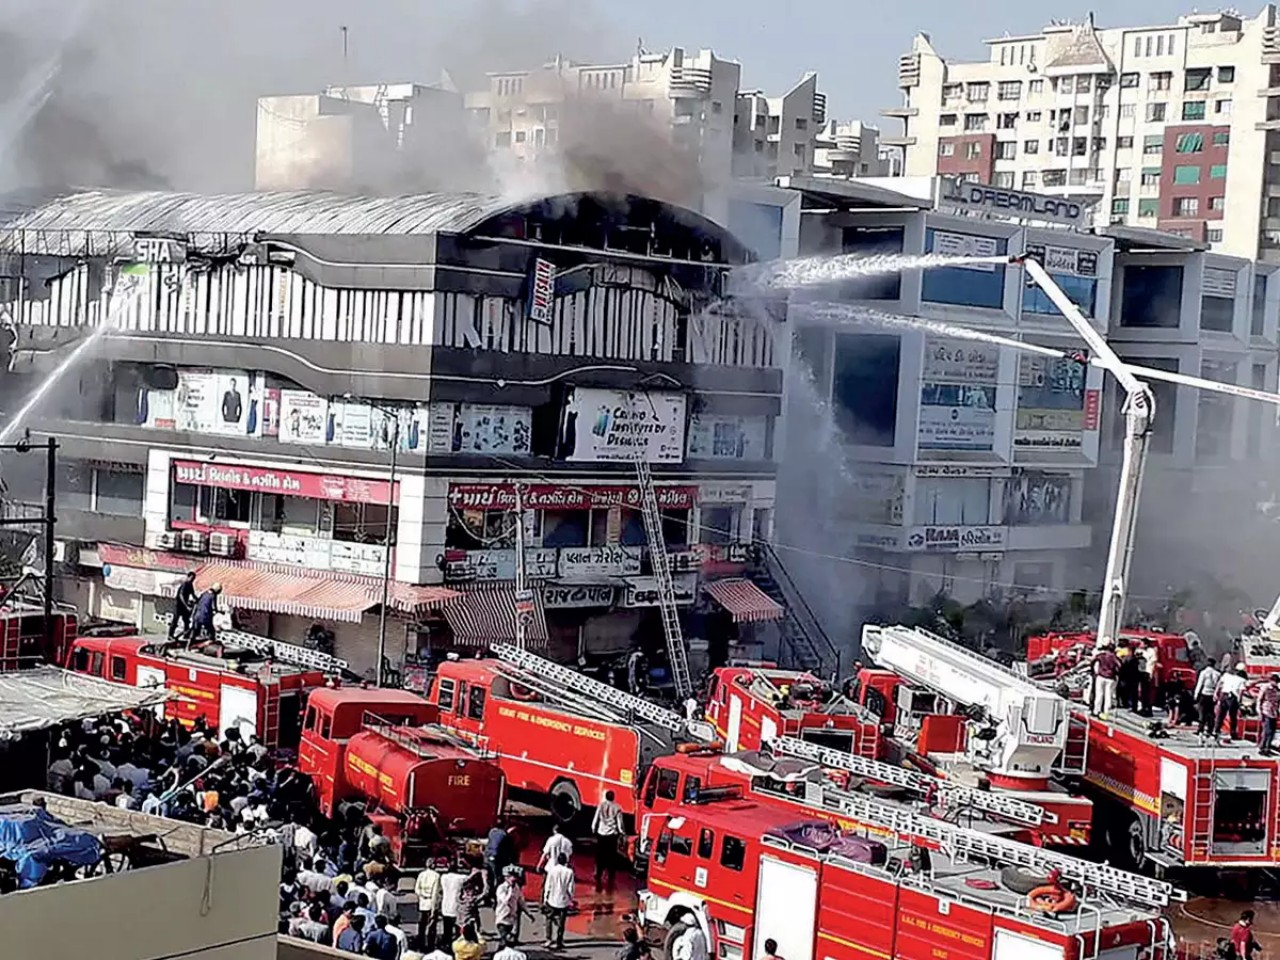 300 rescued after fire broke out in coaching center in Dwarka